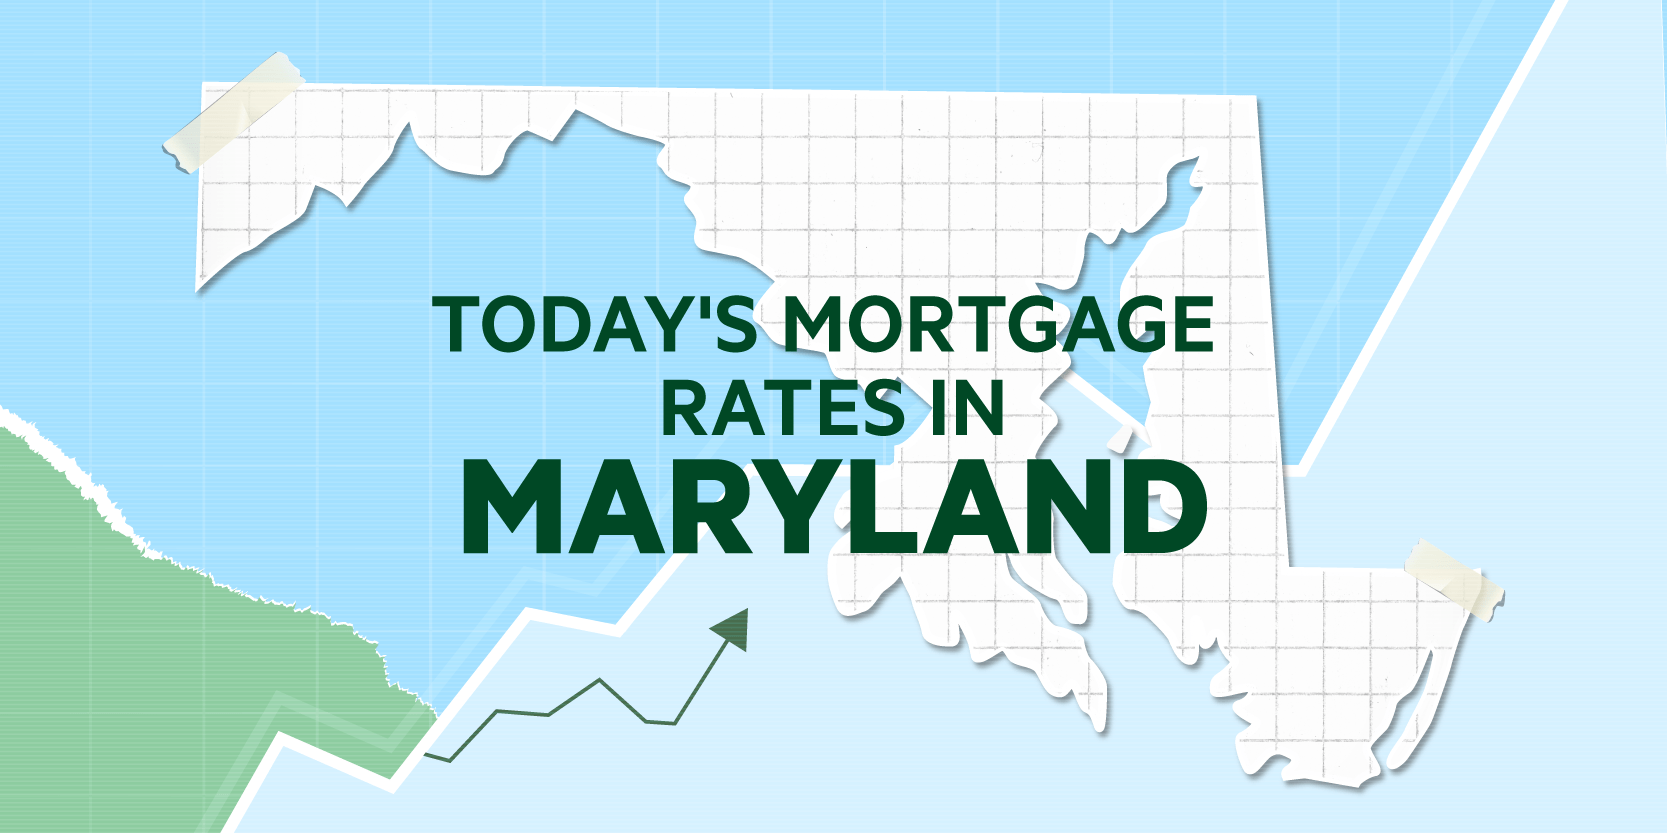 To put it simply, refinancing means that you're trading in your old mortgage loan with a new one. Today's mortgage and refinance rates in Maryland